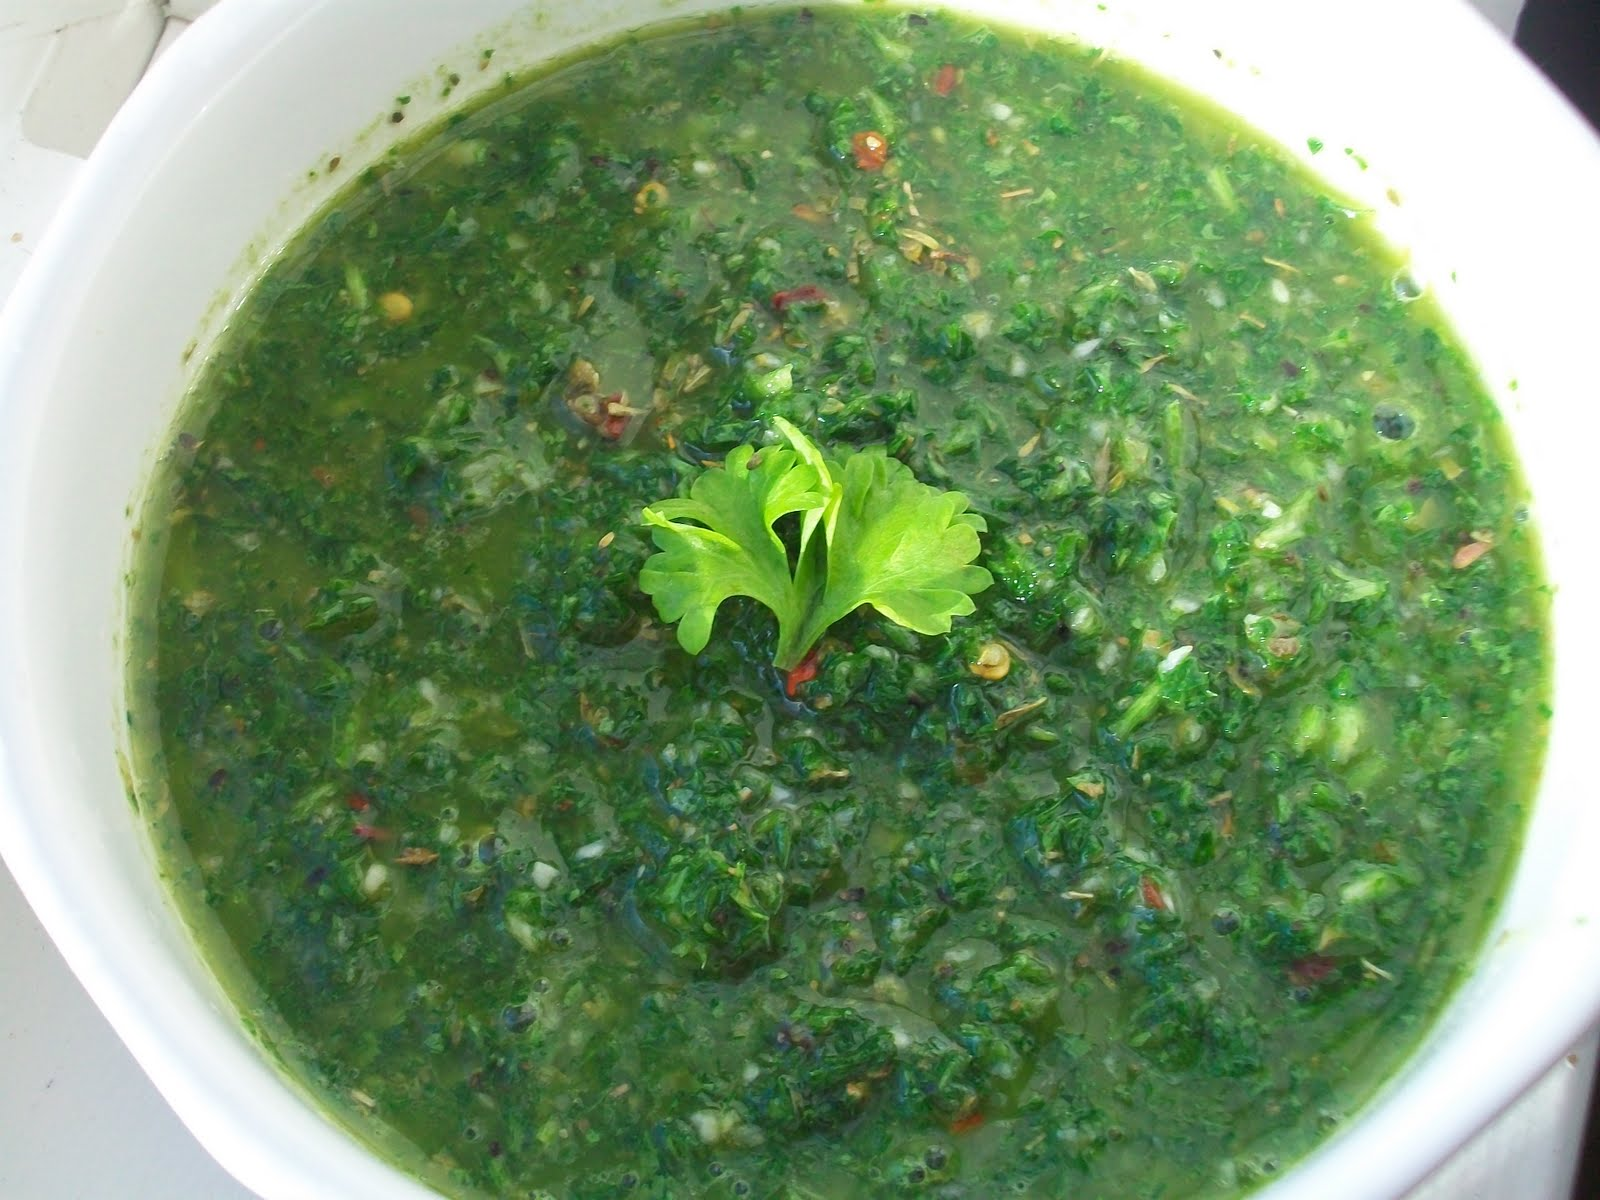 Peace, Love, and Coffee: Chimichurri Sauce